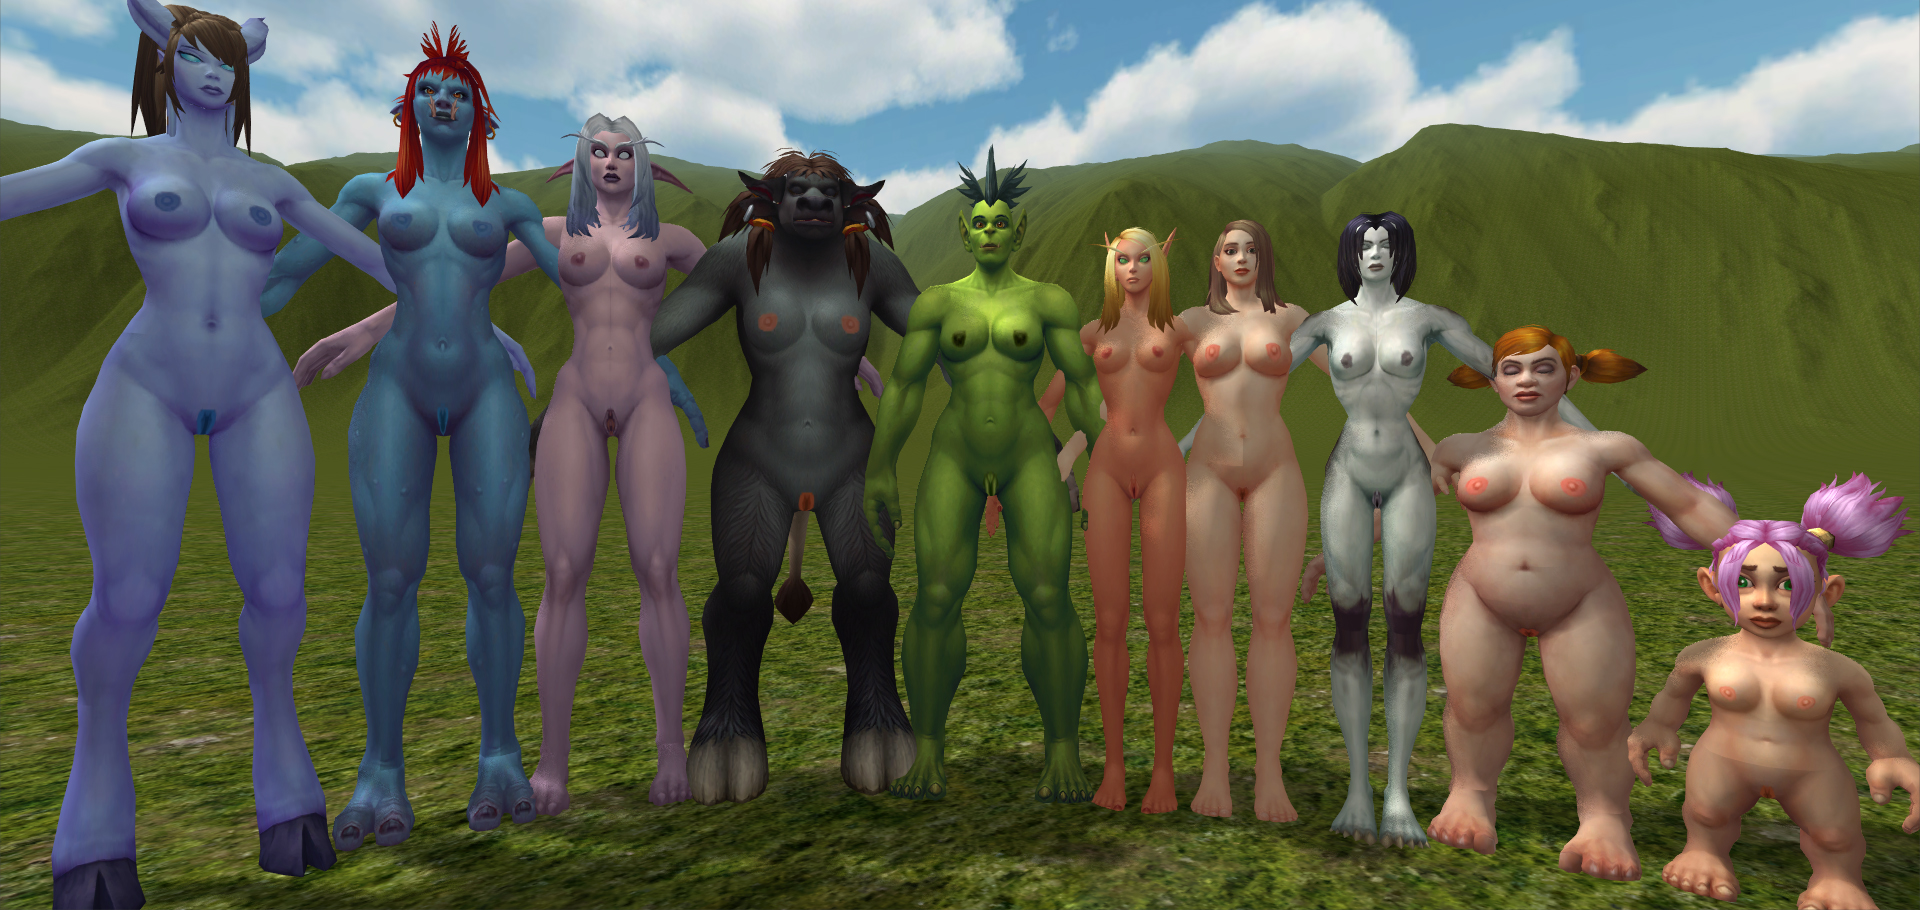 Nude warcraft animated sexy wild lovers